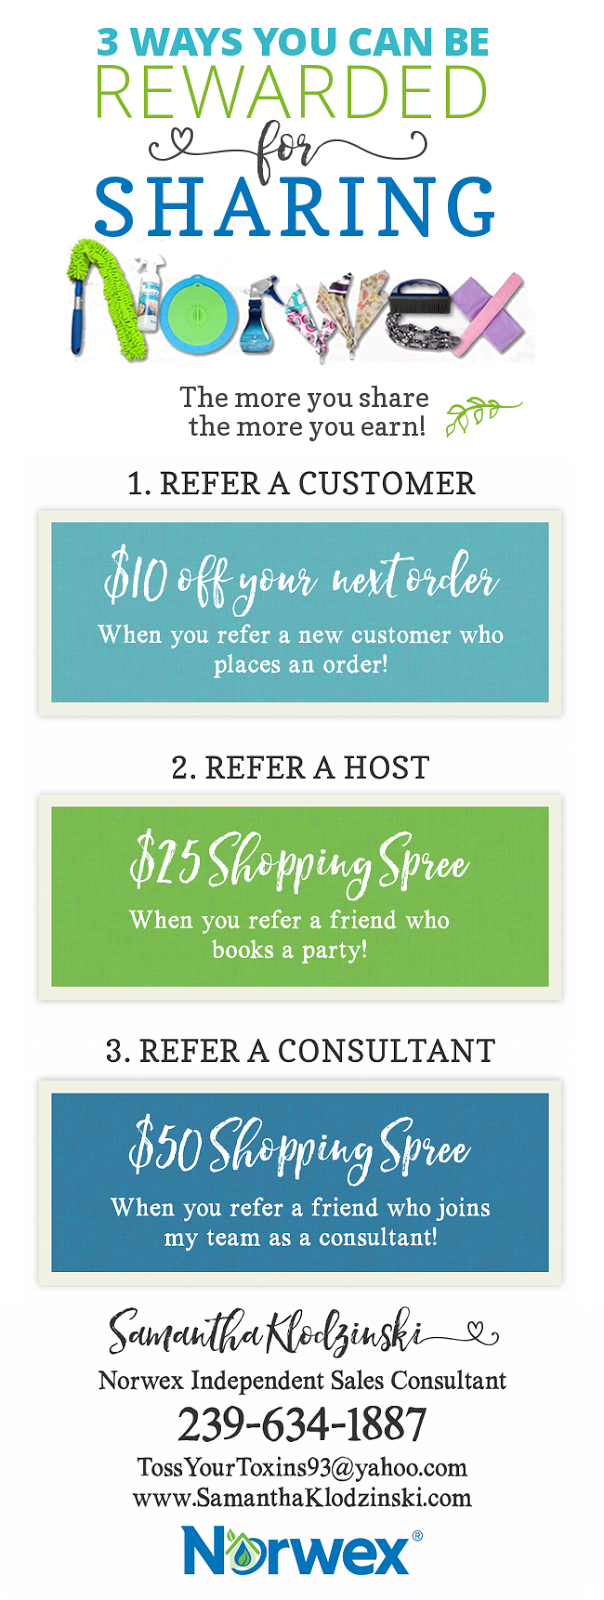 3 ways to share norwex emailnewsletter campaign image - Norwex Party Invitation